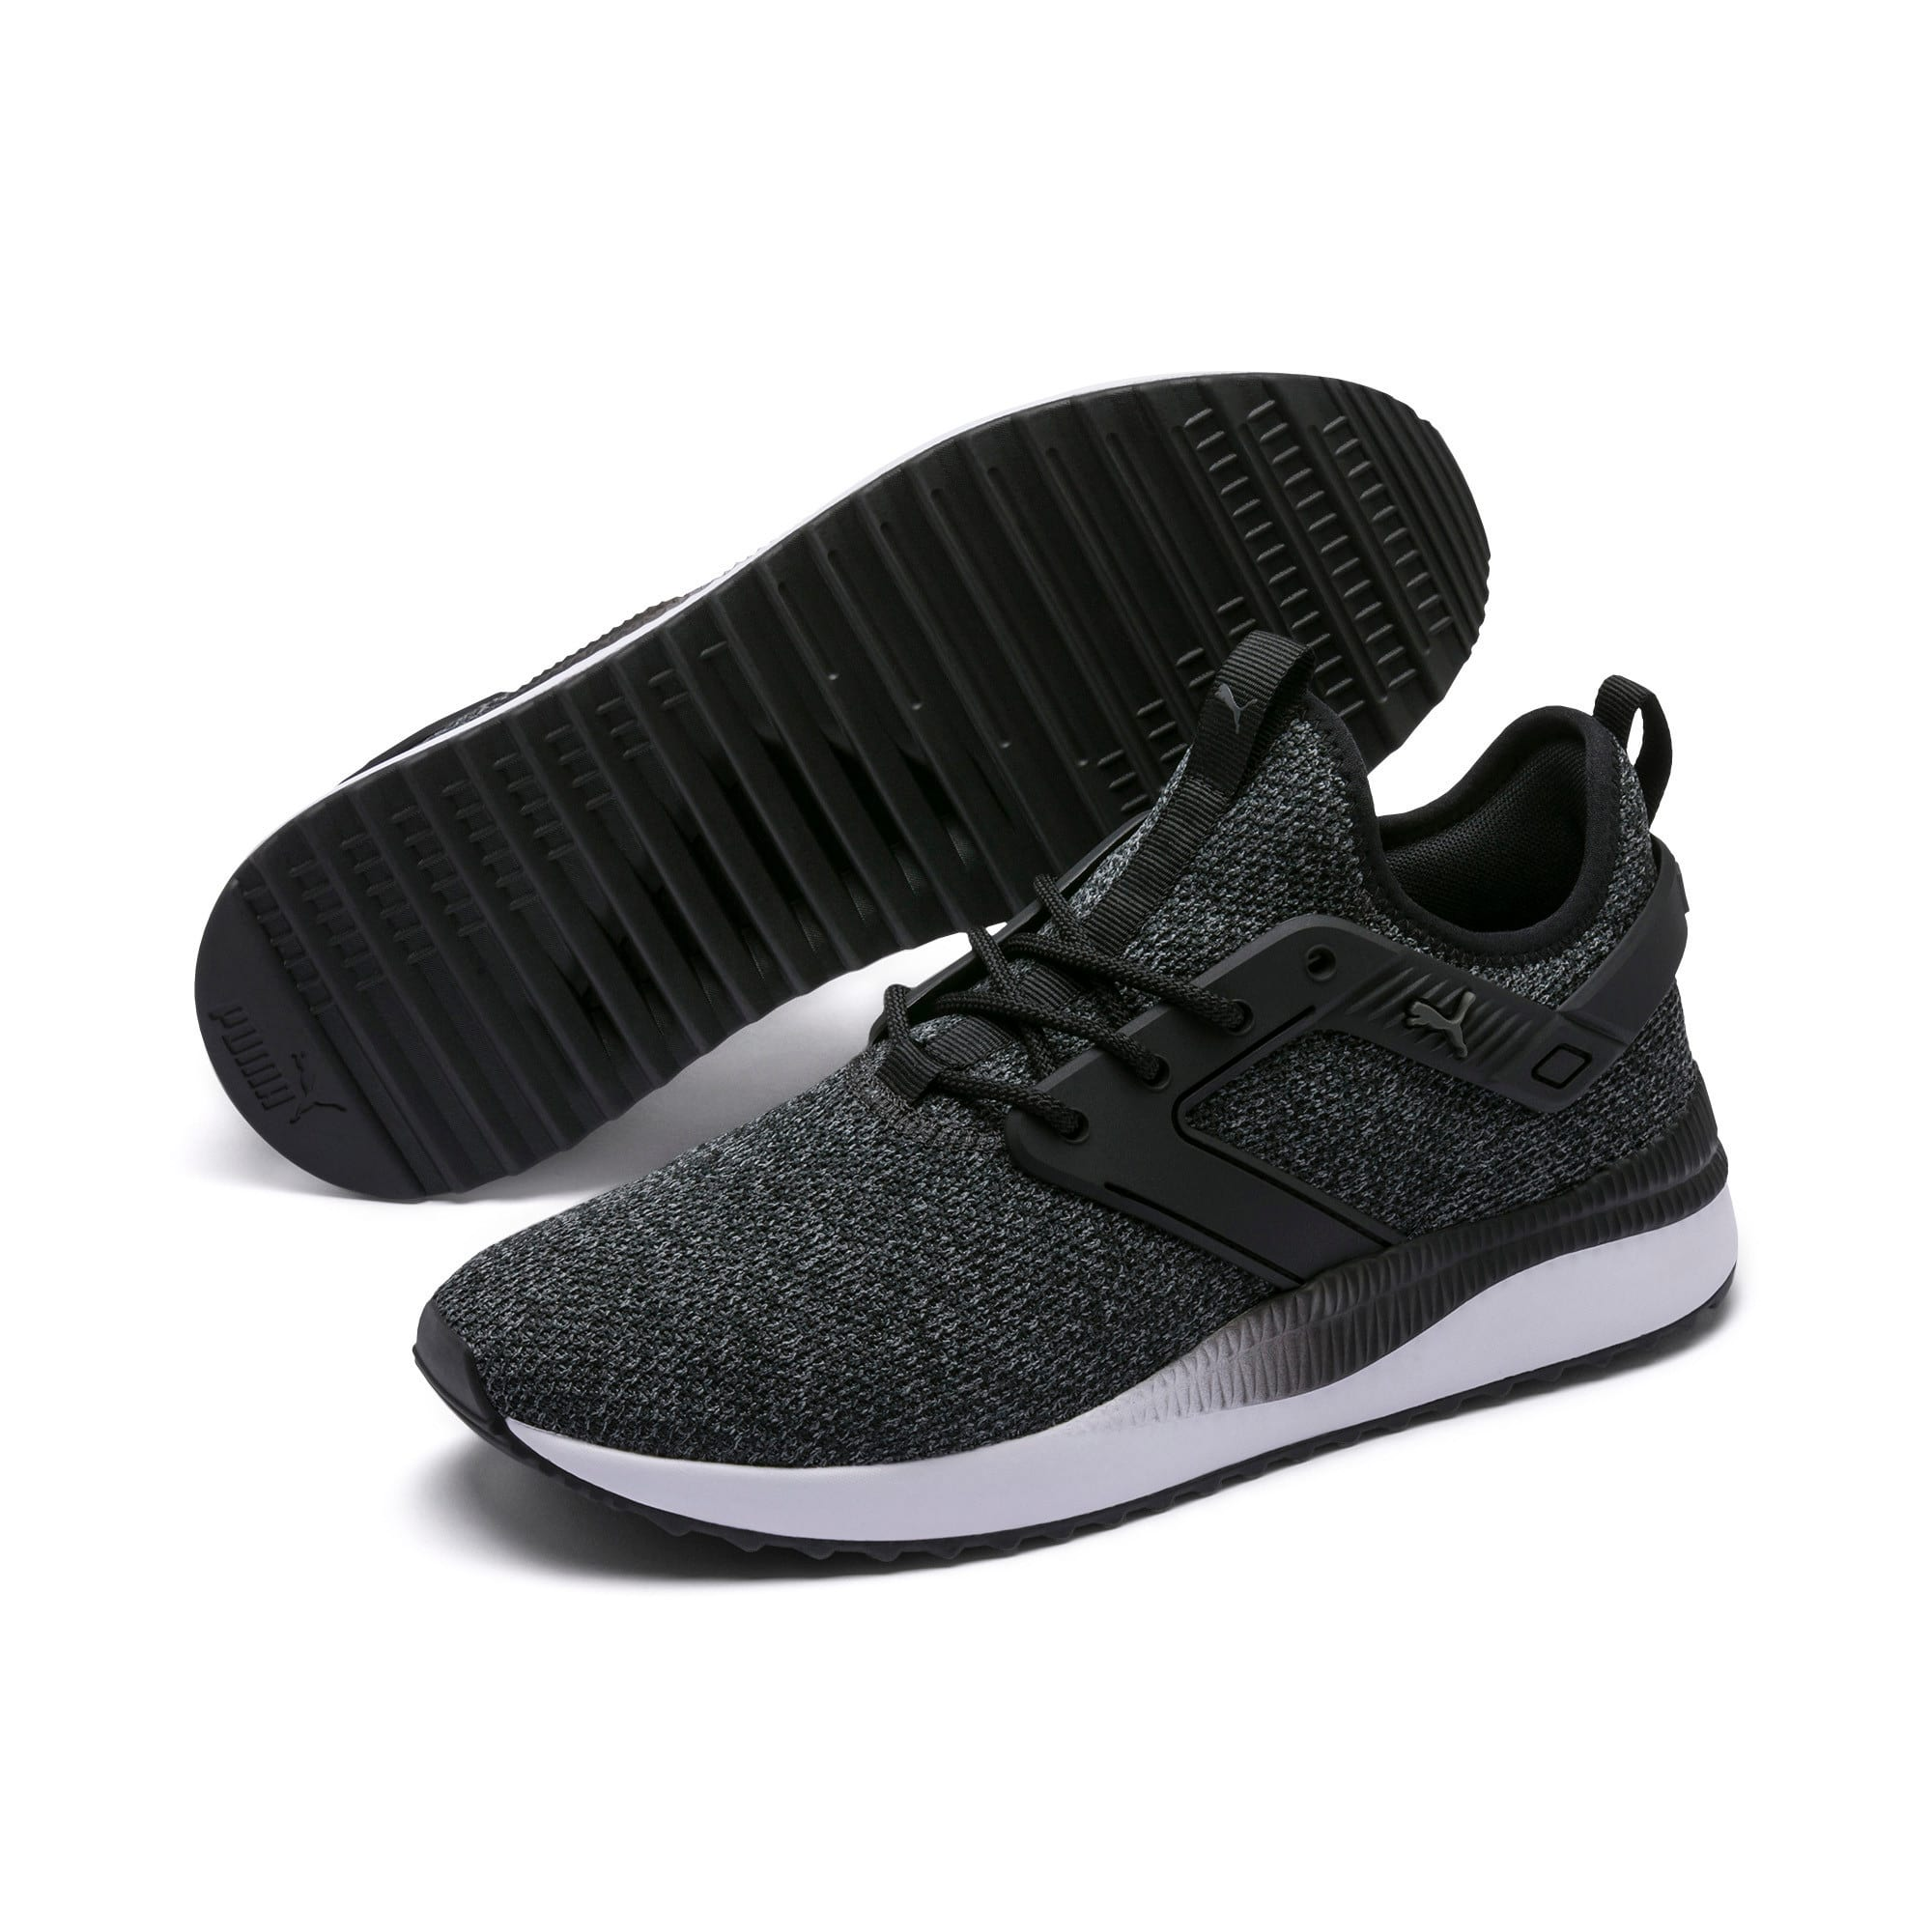 Thumbnail 6 of Pacer Next Excel VariKnit Trainers, Puma Black-Charcoal Gray, medium-IND